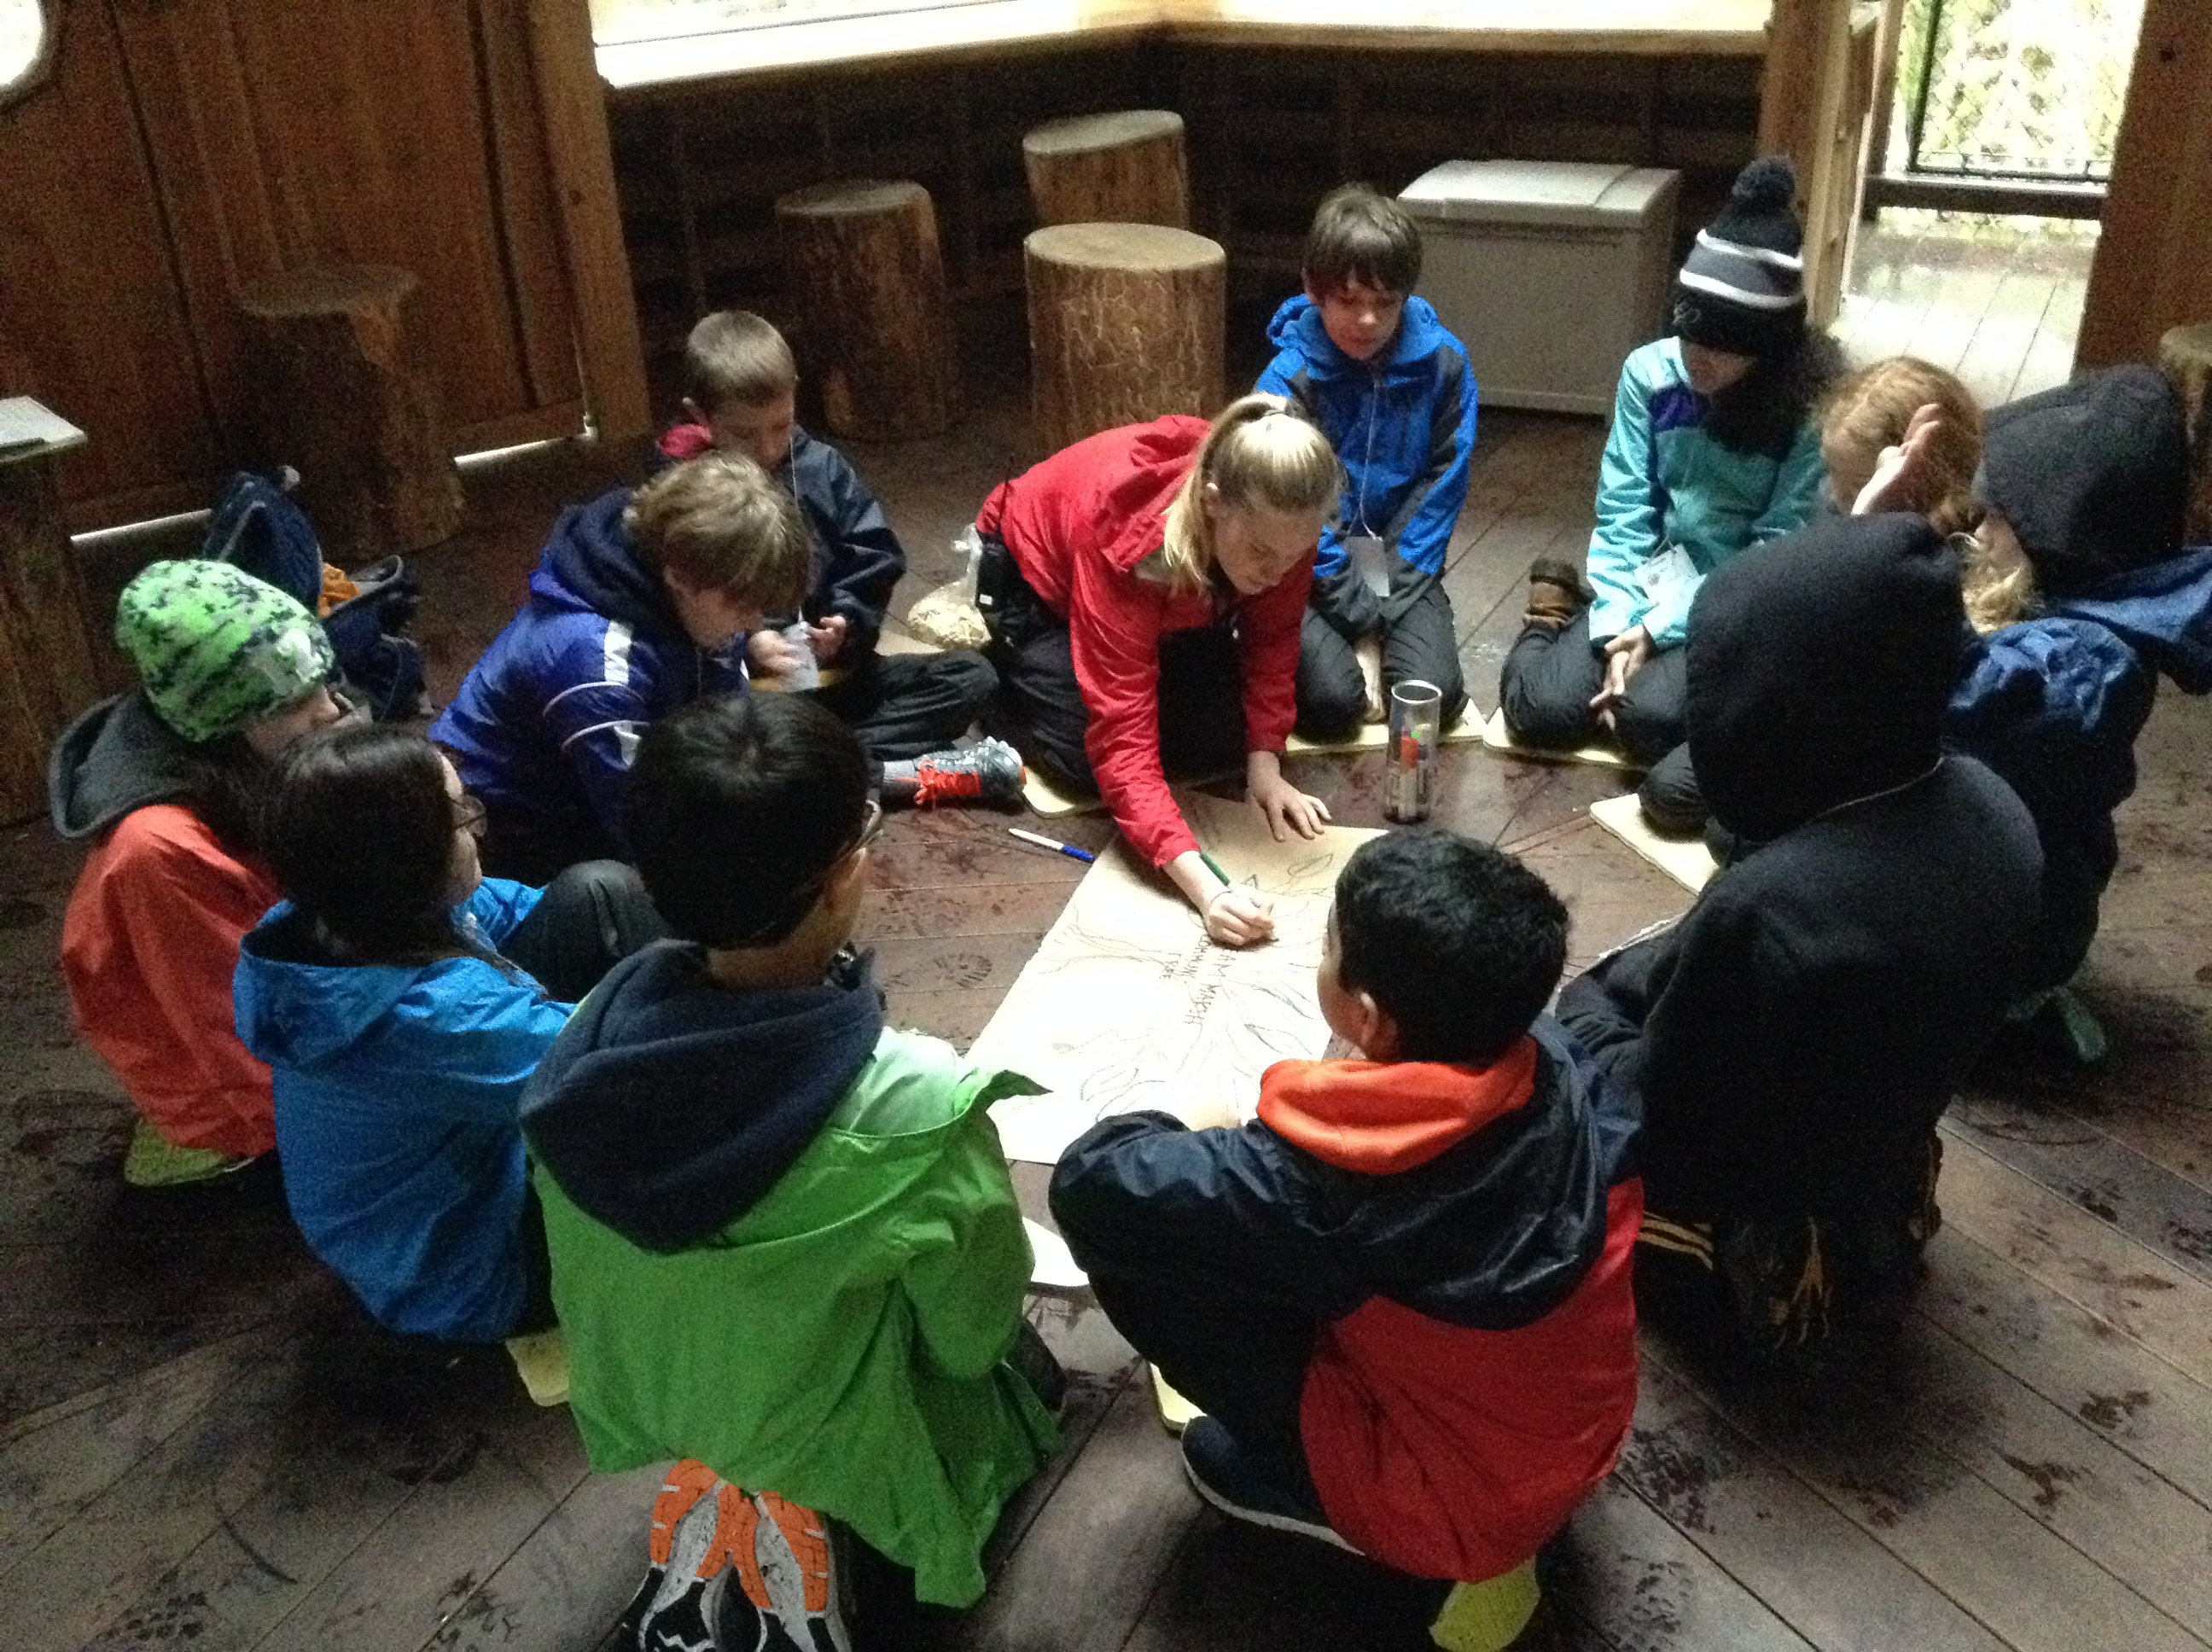 Hannah circles up with a group of School Overnight Program students during her time as an IslandWood graduate student.